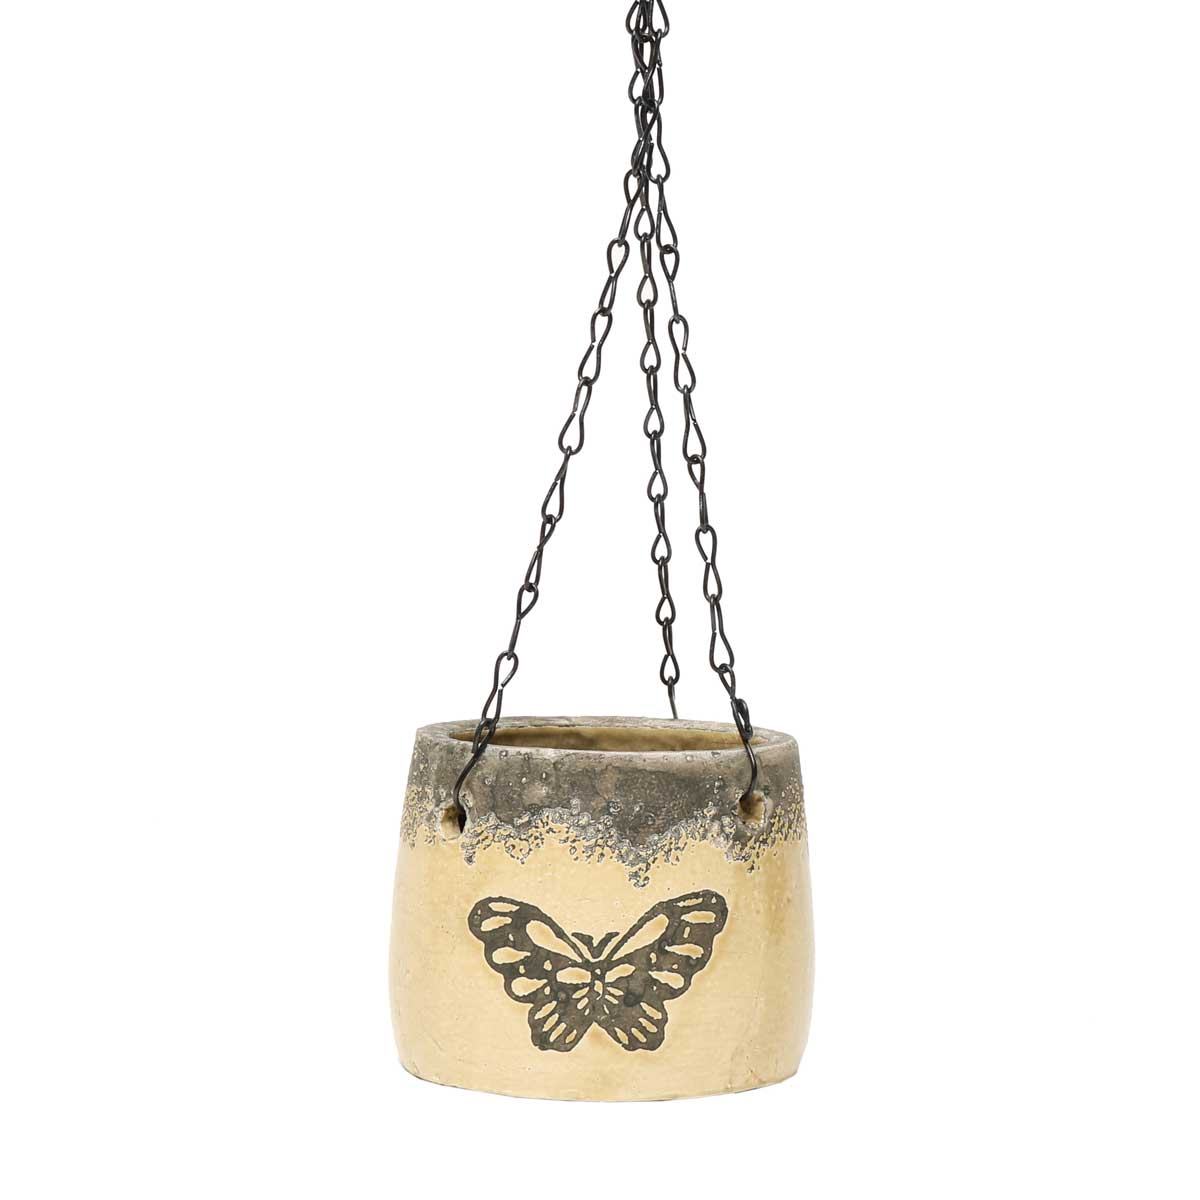 "BUTTERFLY HANGING POT 4""X4"" WITH 10"" CHAIN"